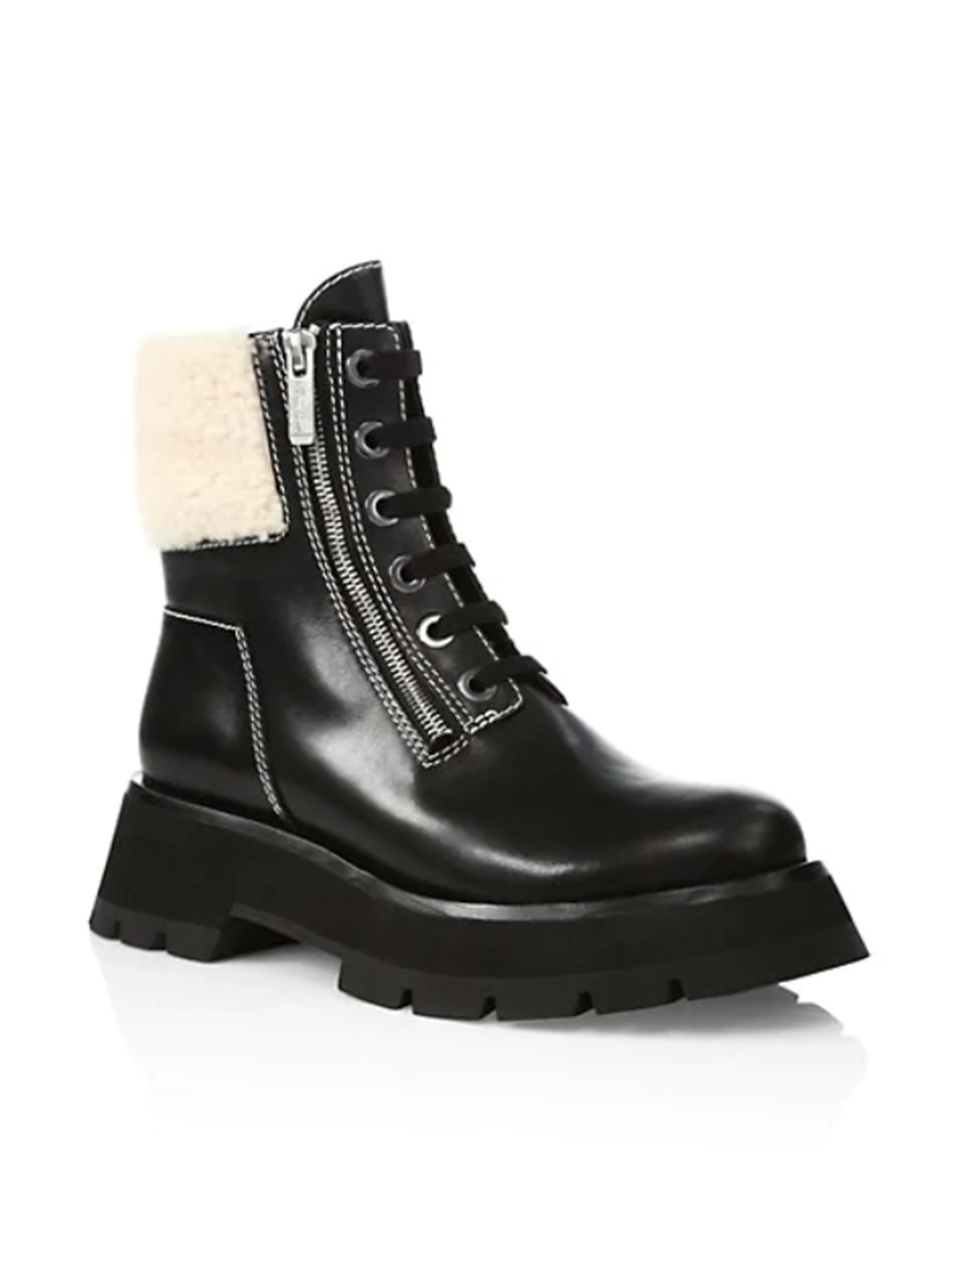 3.1 Phillip Lim Kate Lug Sole Shearling Boot 3/4 View